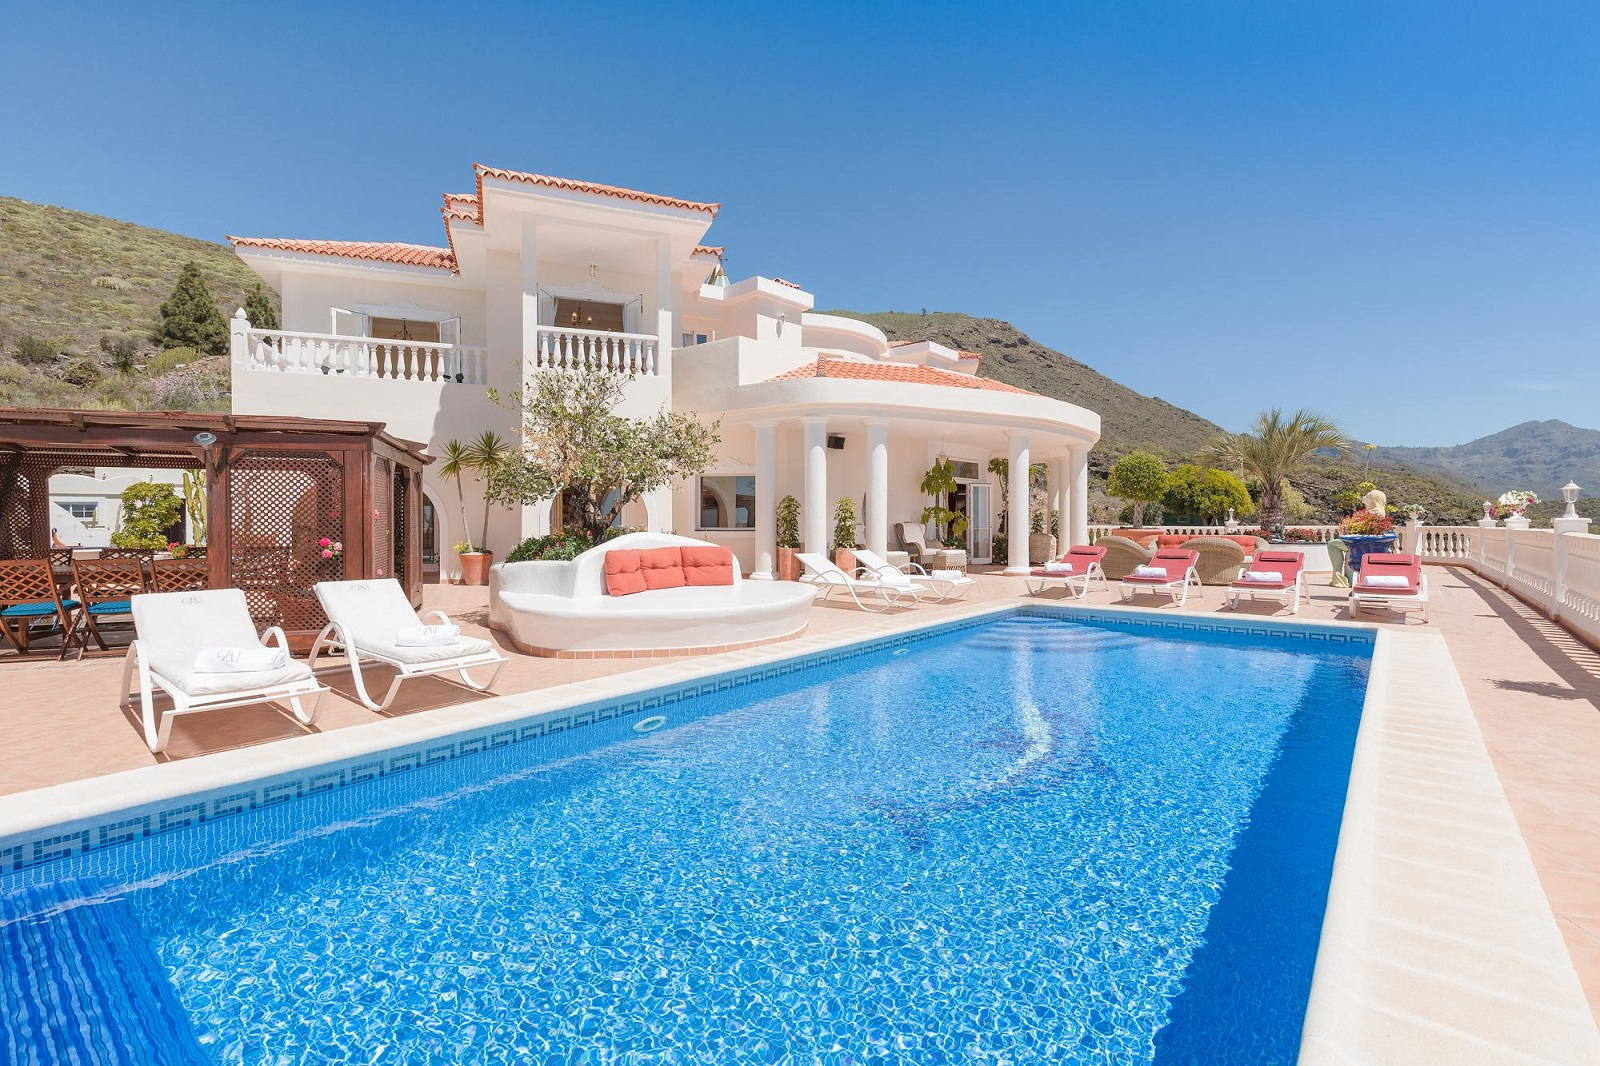 Luxury Holiday Villa With Pool Villa Monaco Adeje Luxury Holiday Rentals Tenerife Private Heated